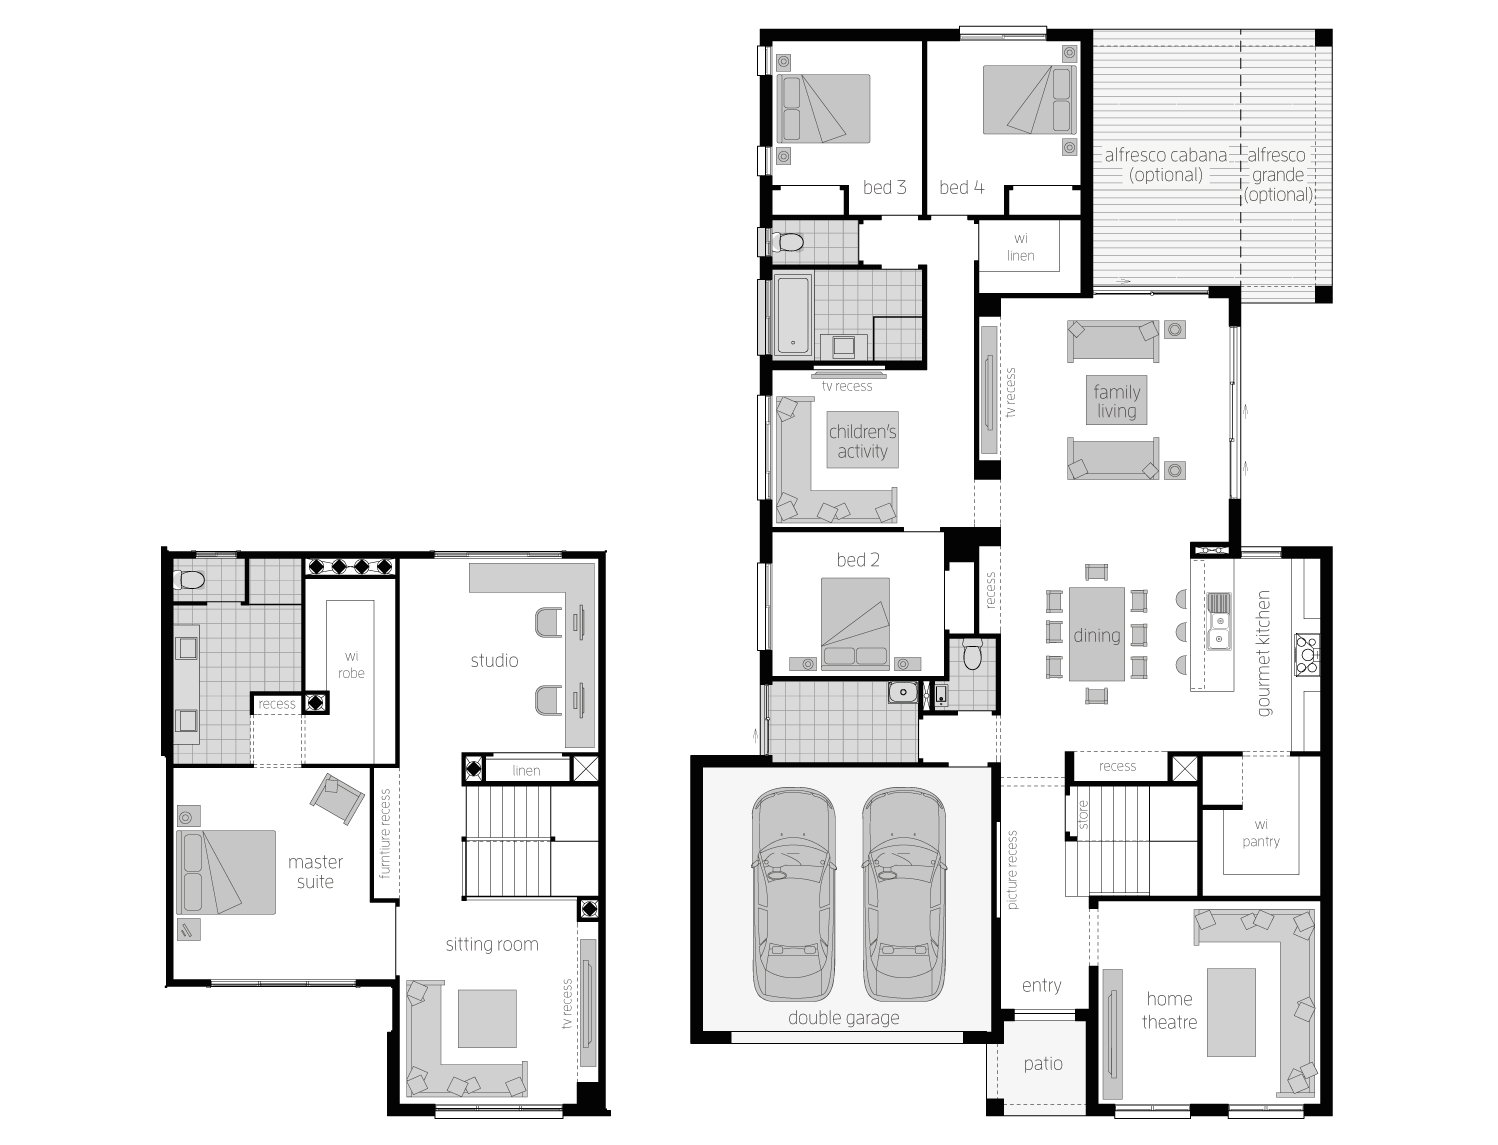 Floor Plan - Ellerston37 - Two Storey Home - McDonald Jones